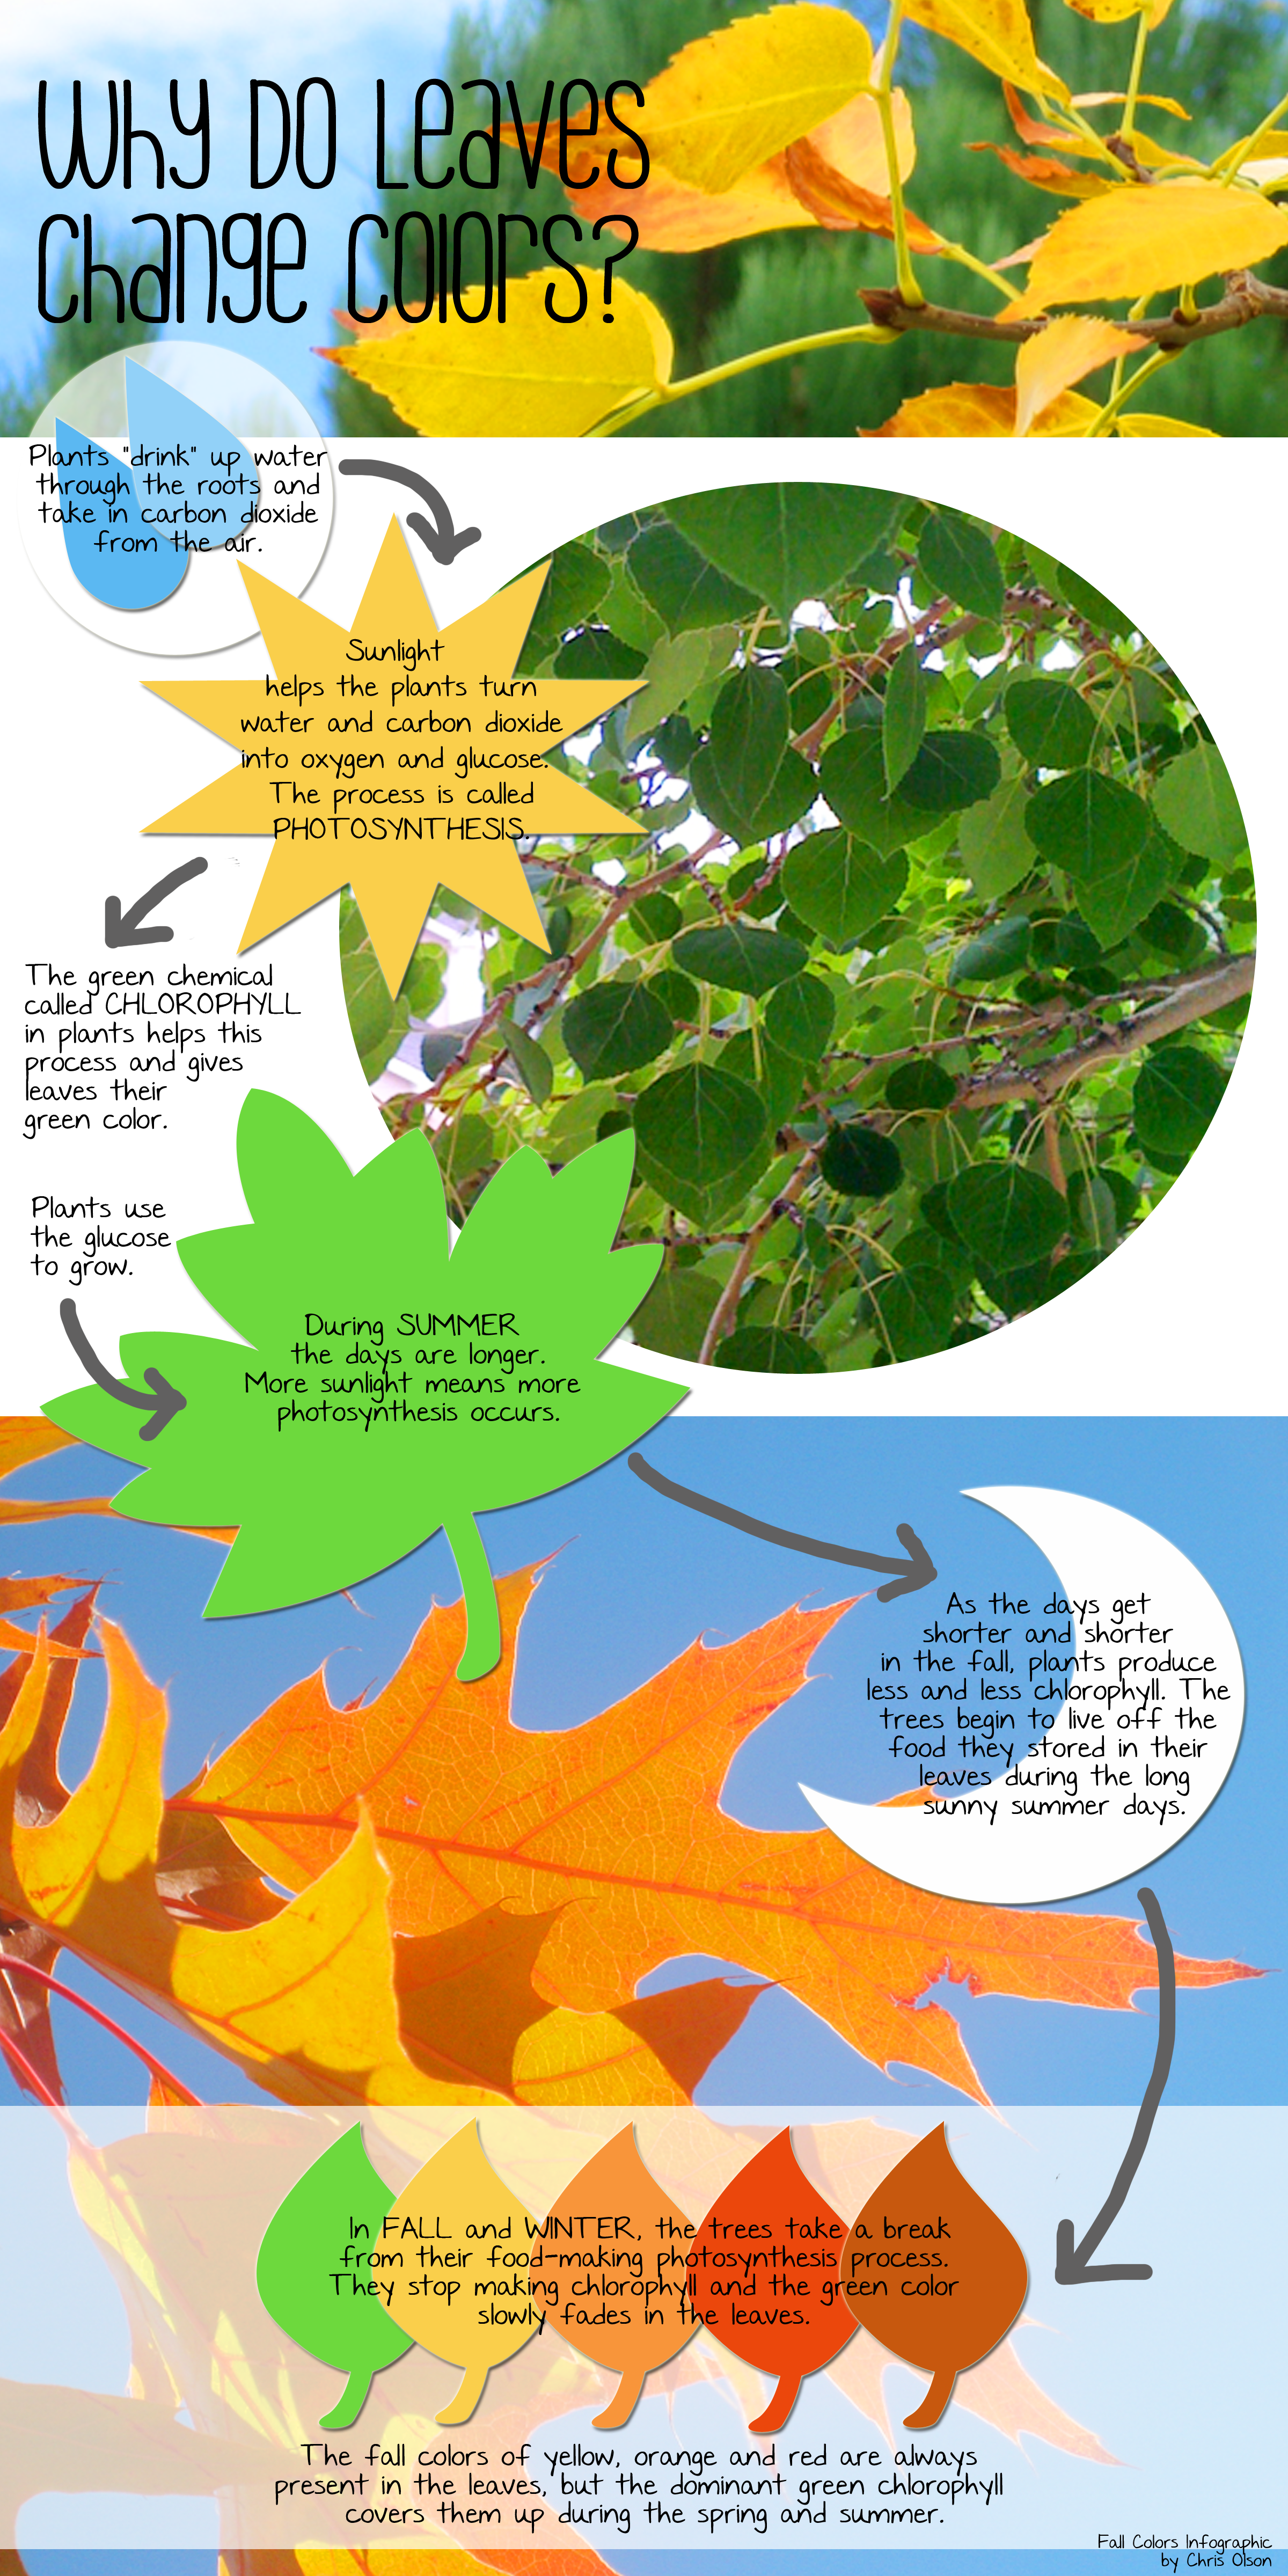 Momathon Blog: Why Do Leaves Change Colors in Fall?